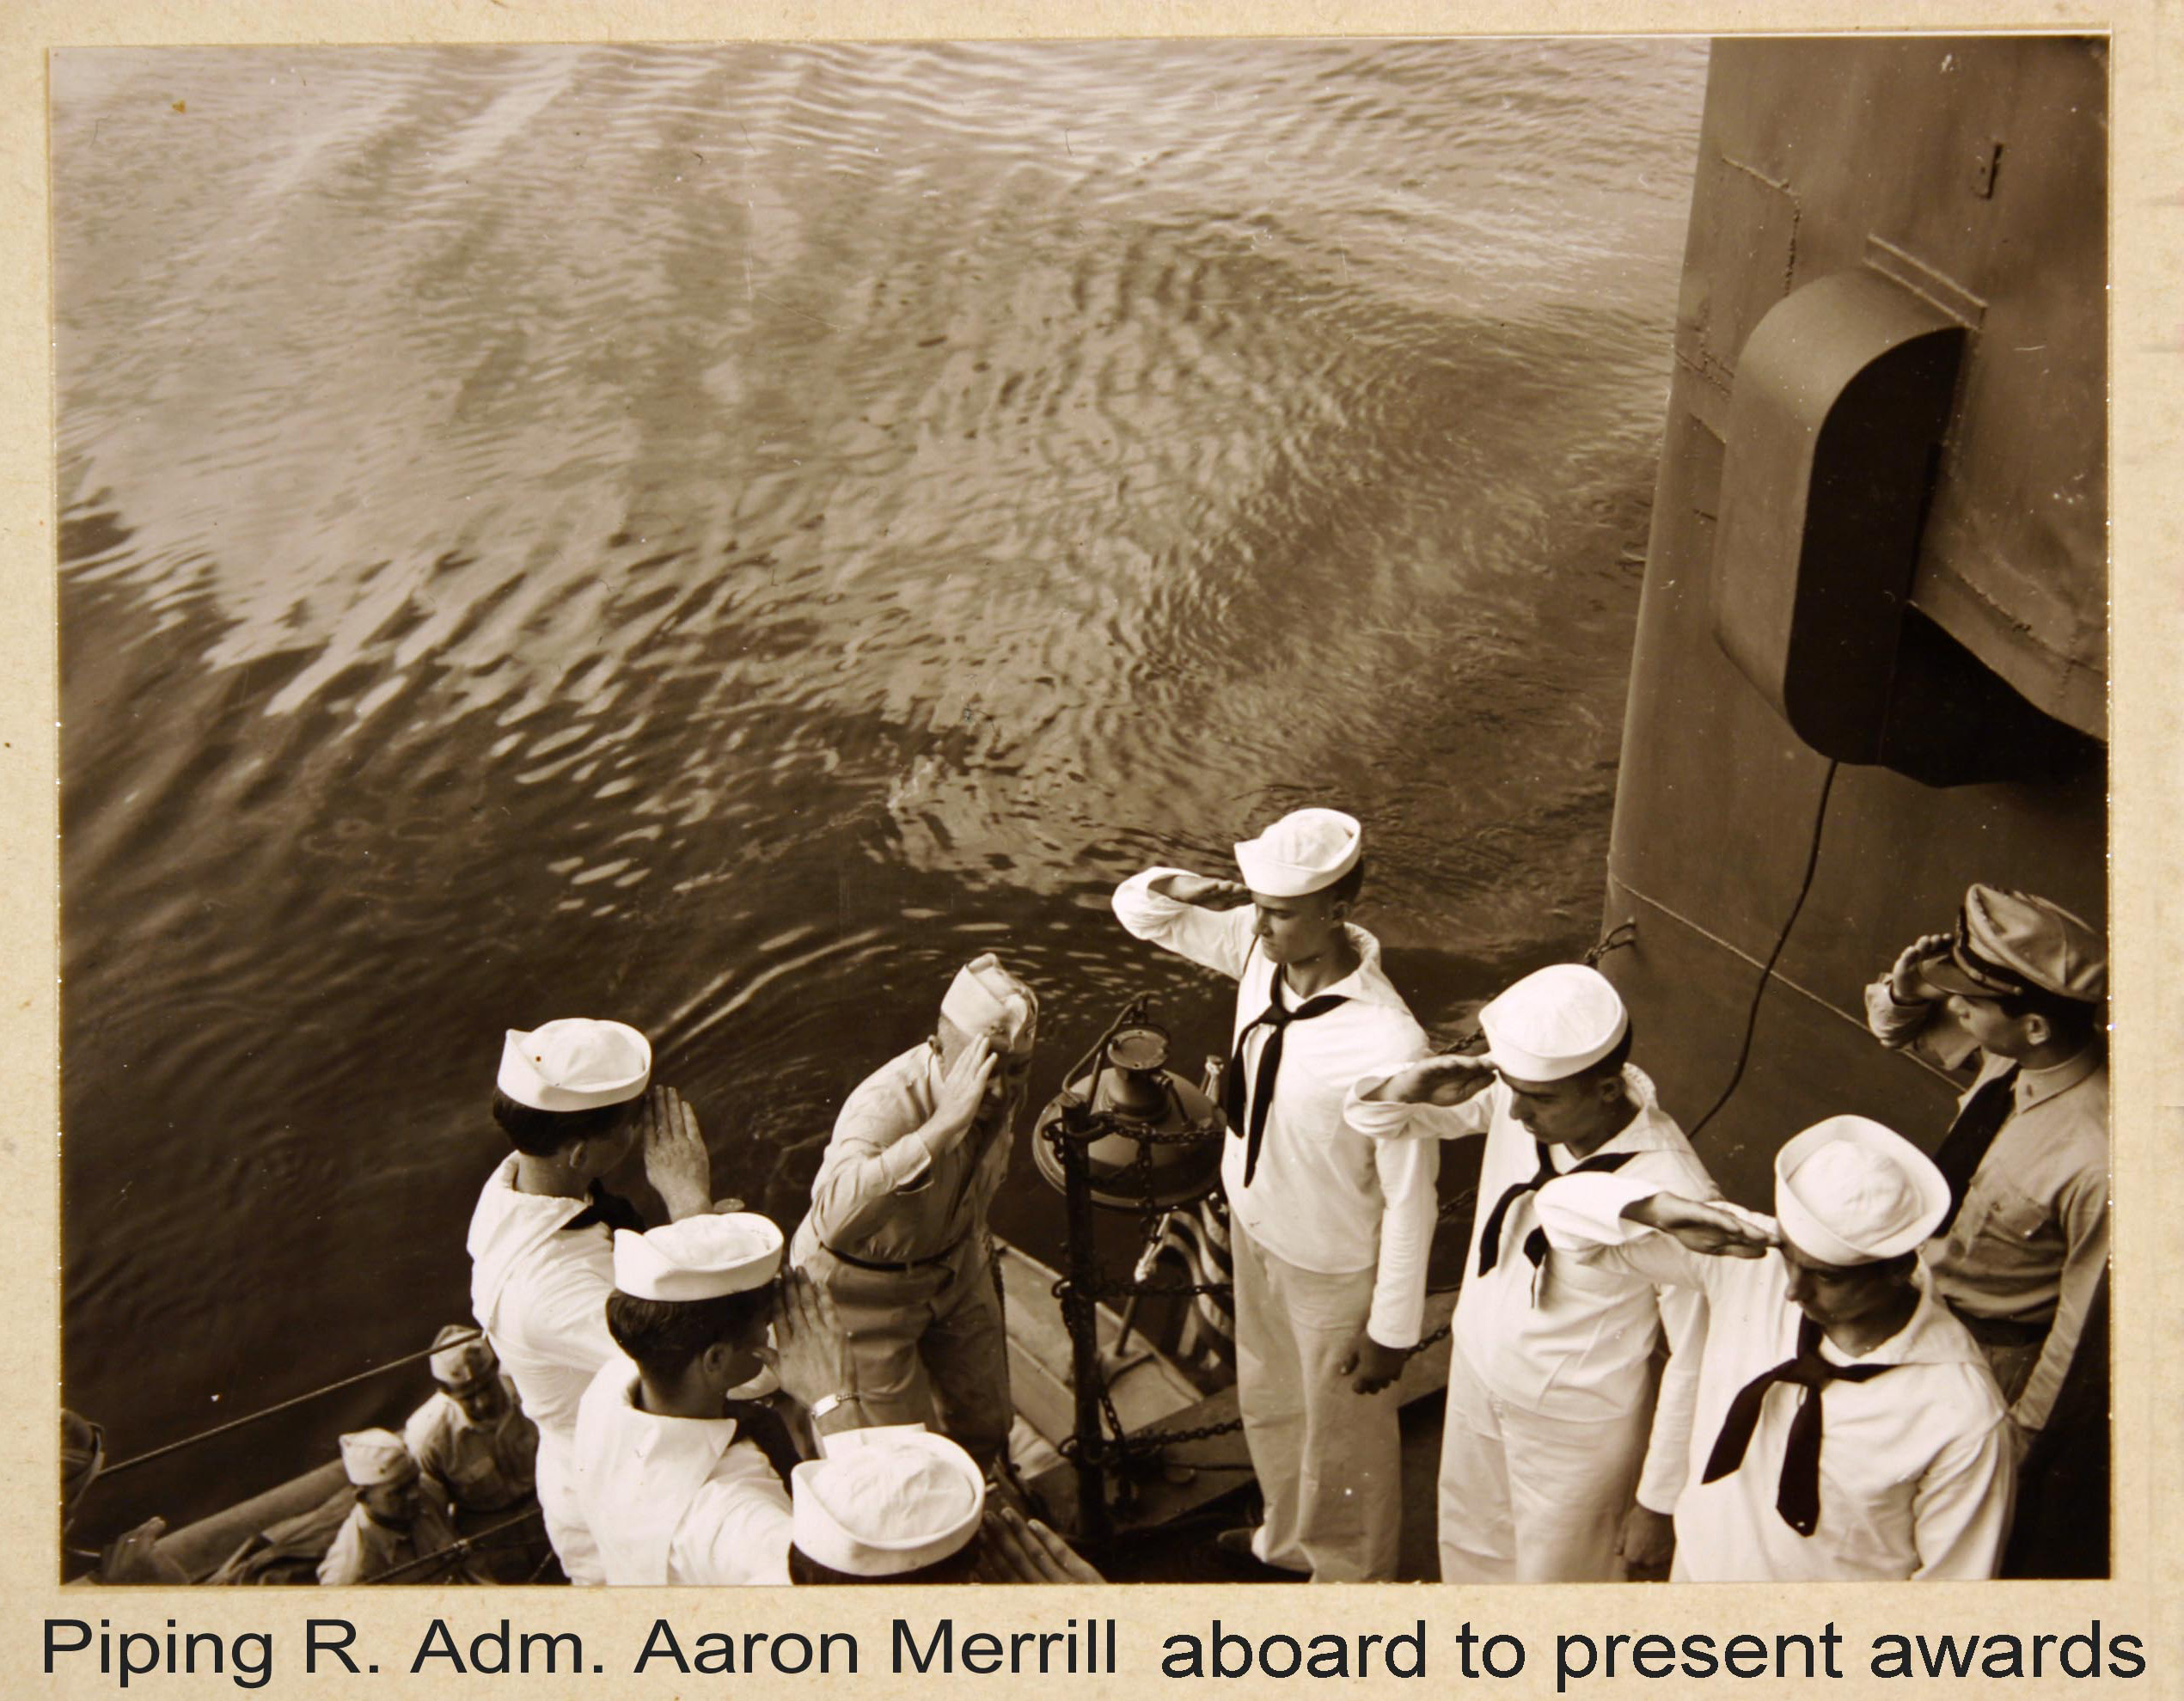 Rear Admiral Merrill piped aboard Columbia